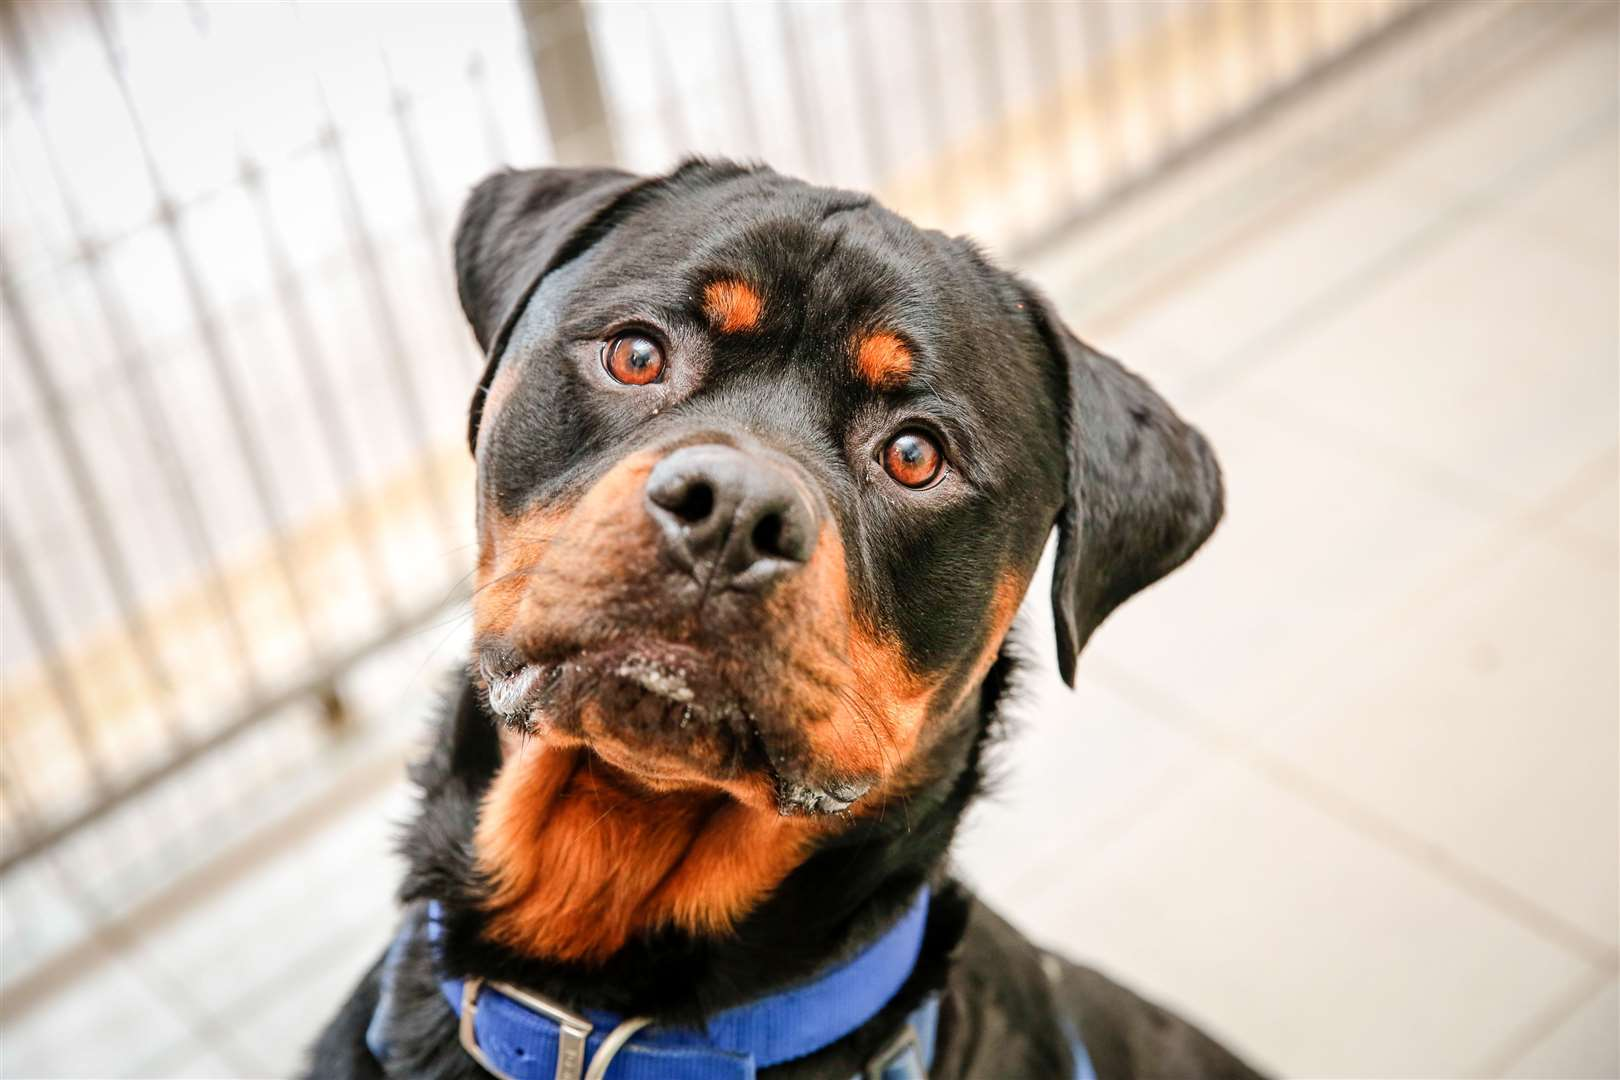 A rottweiler - such a dog is believed to have sparked the action. Stock picture